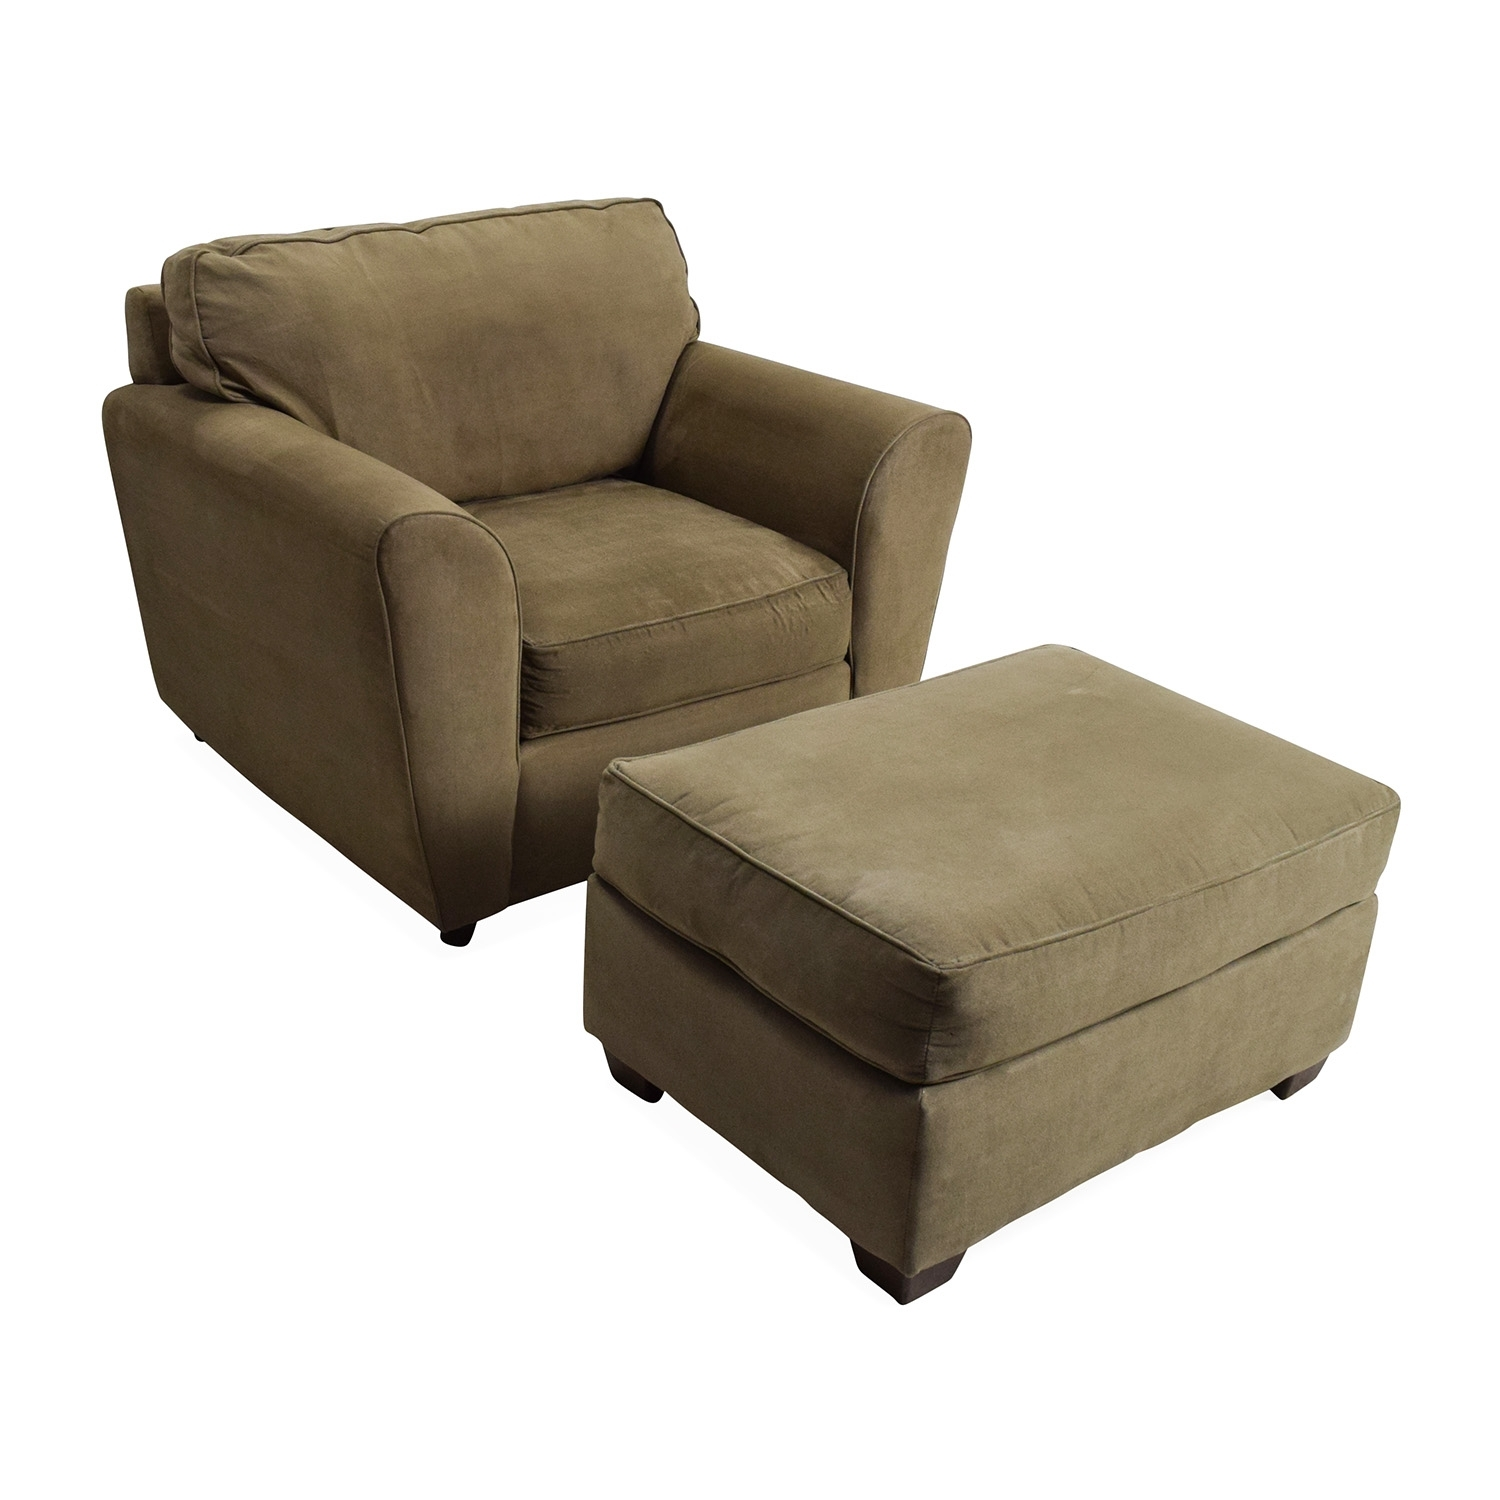 56% Off   Bauhaus Bauhaus Armchair With Ottoman / Chairs Inside Chairs With Ottoman (Photo 3 of 15)